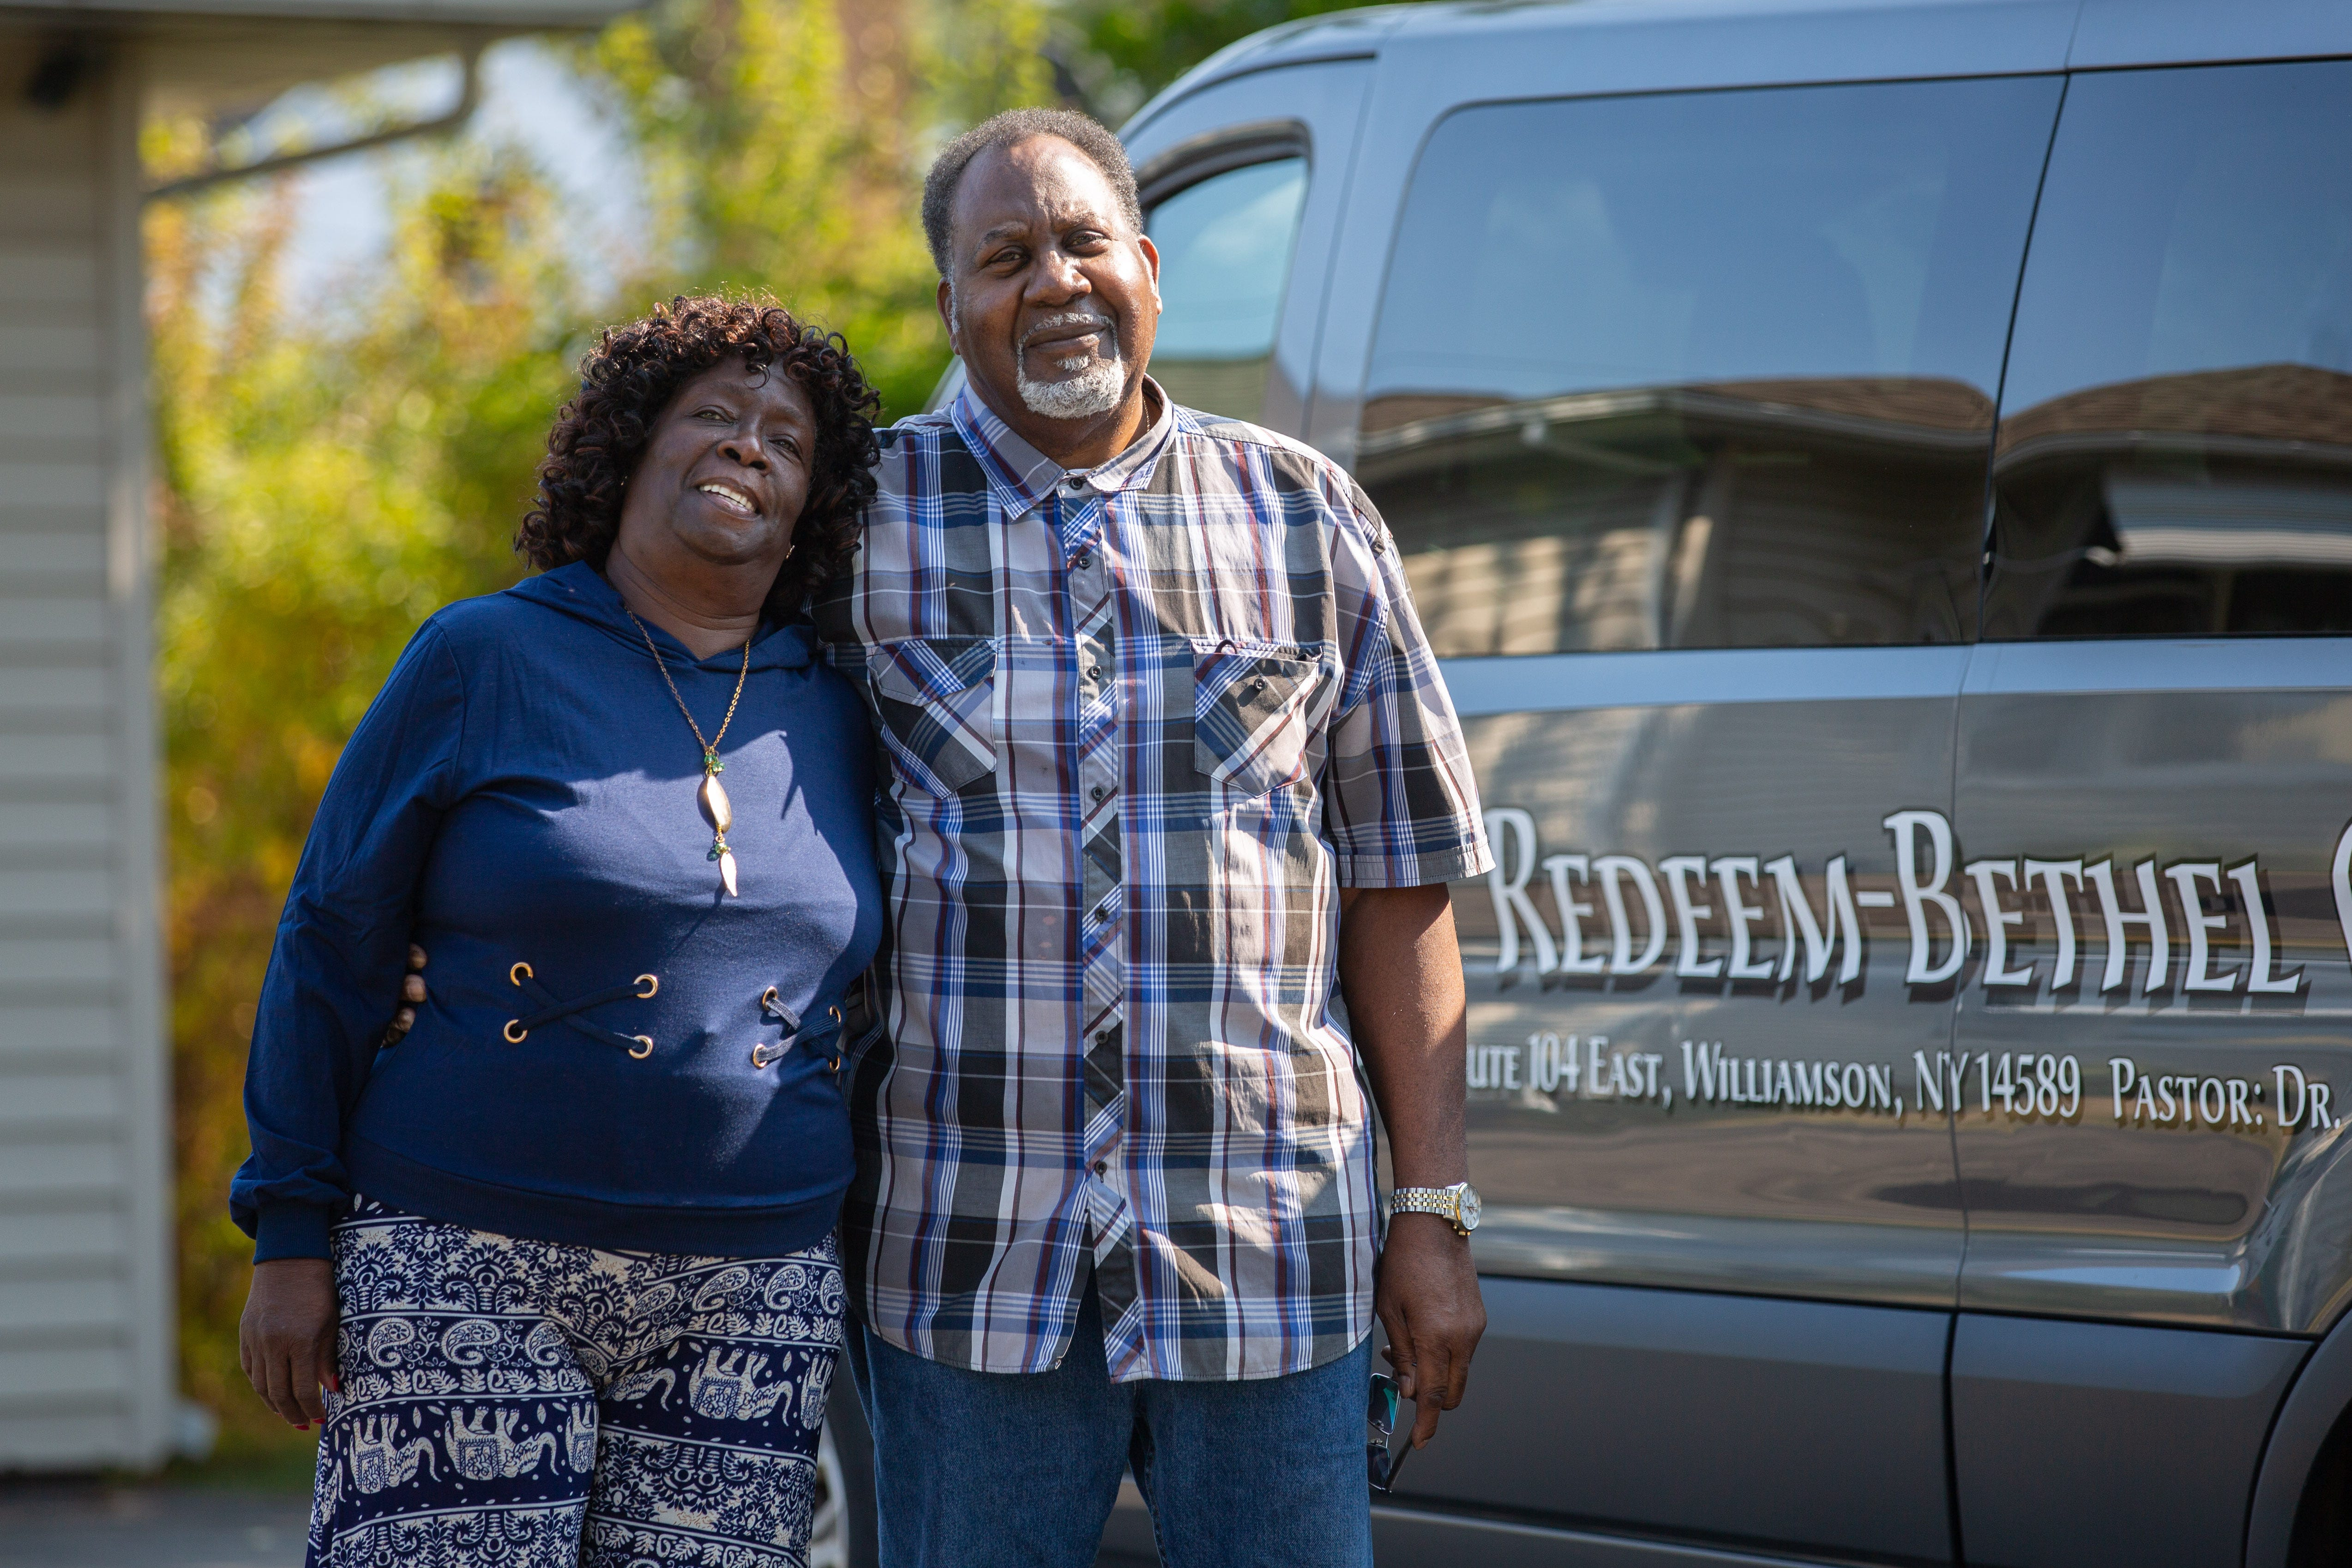 Roberta Carter and her husband, James, stand beside their church's van parked in their driveway.